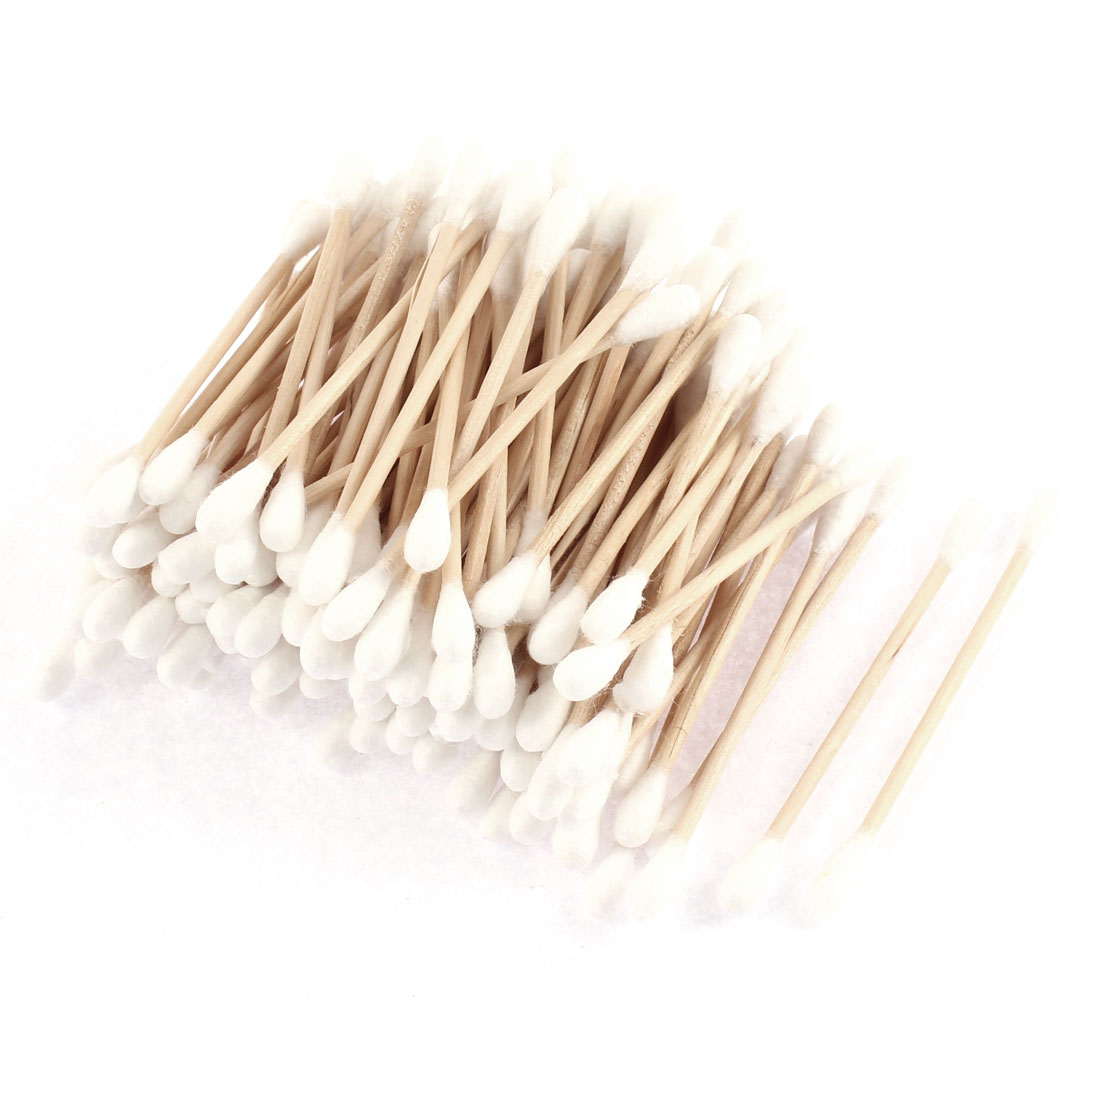 Wood Rod Double Head Ear Picks Cosmetic Removing Tool Cotton Swab Bud 100 Pcs